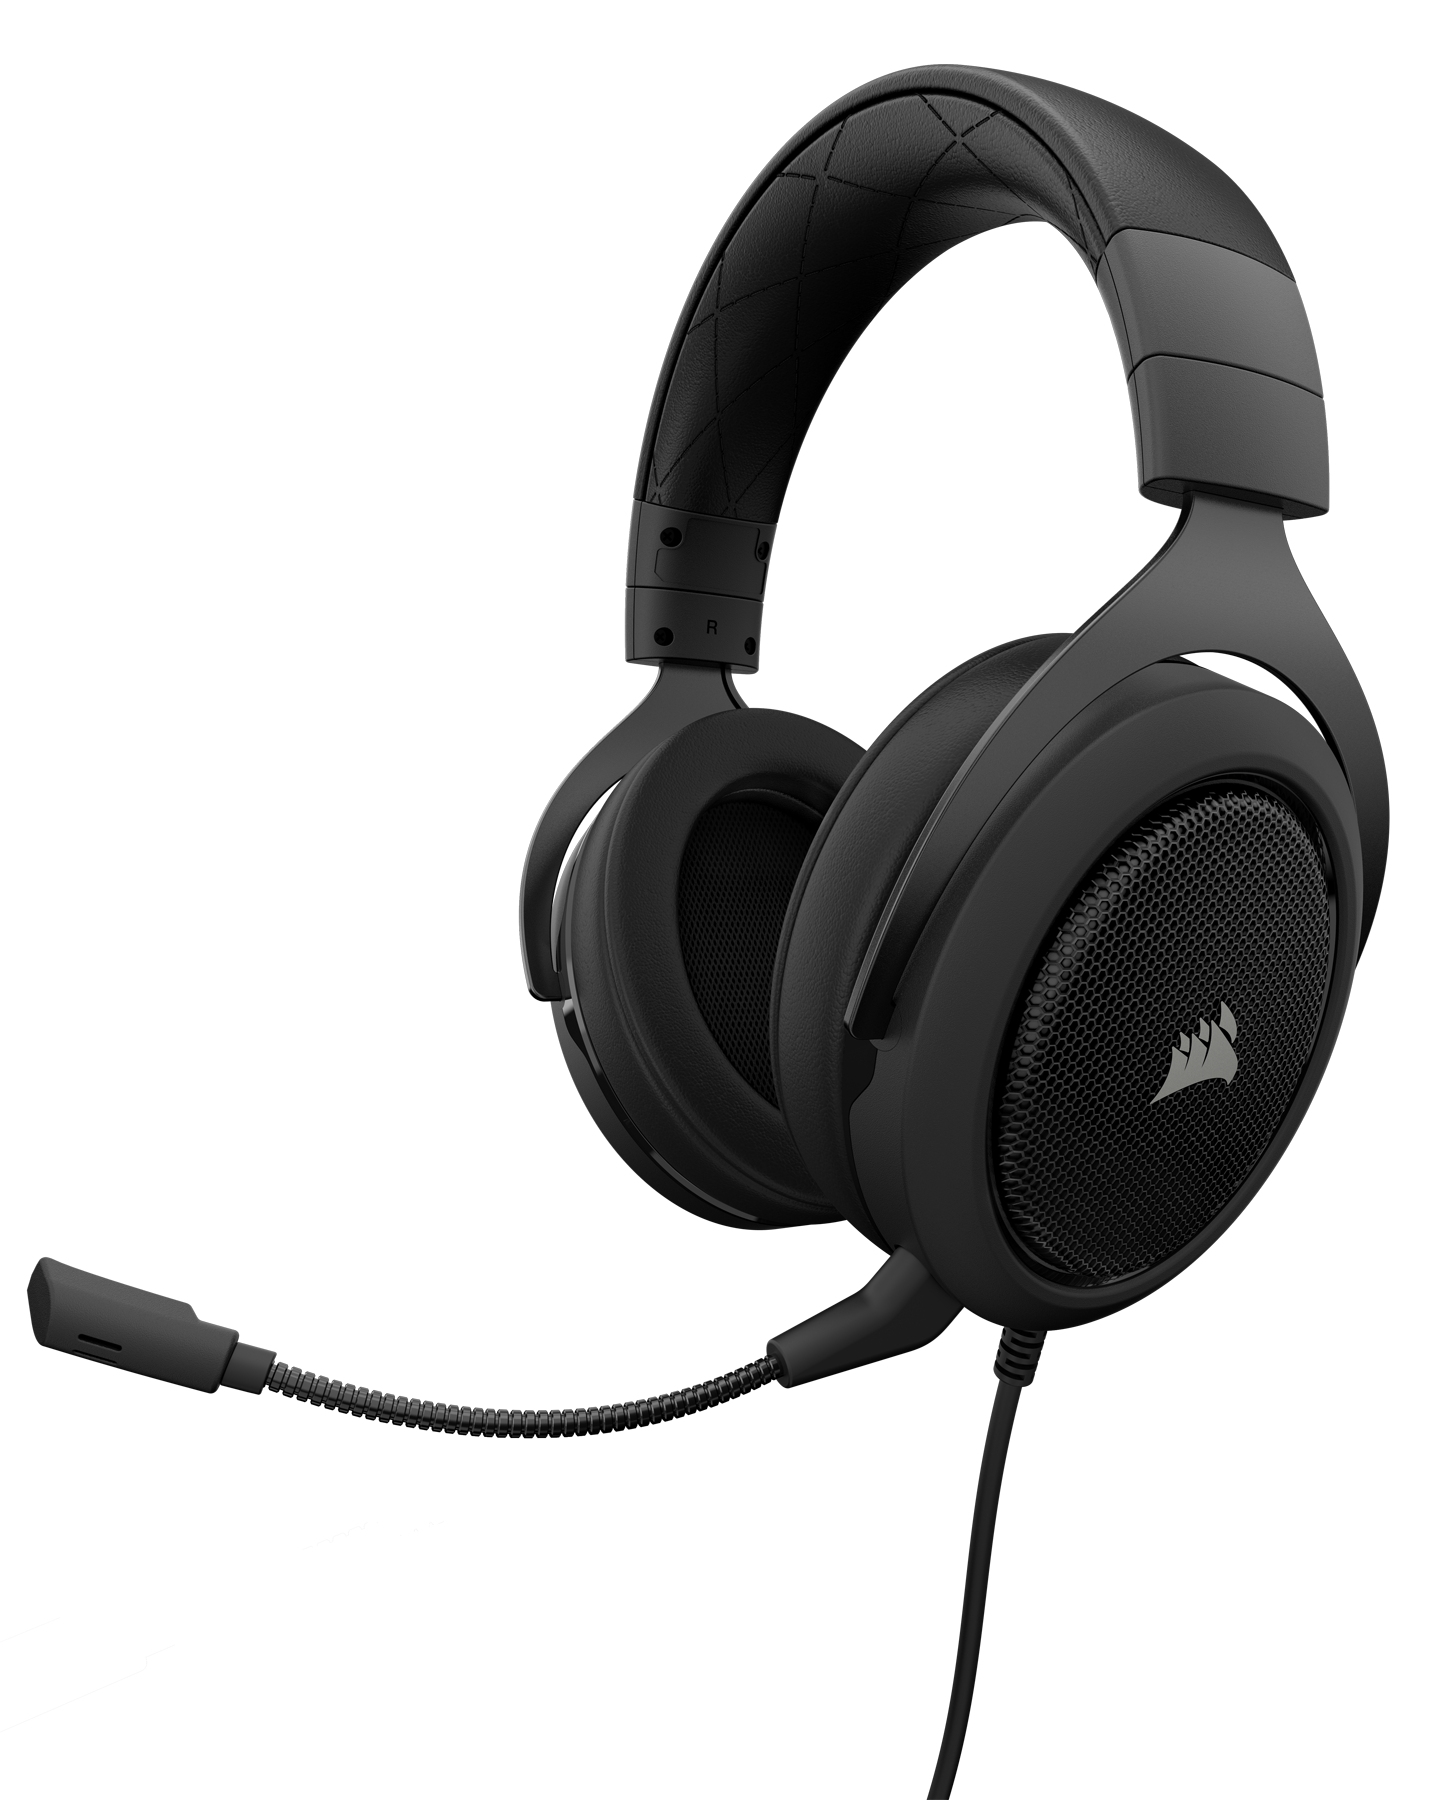 Corsair HS60 Surround Stereo Gaming Headset with 7 1 Surround Sound -  Carbon - Newegg com